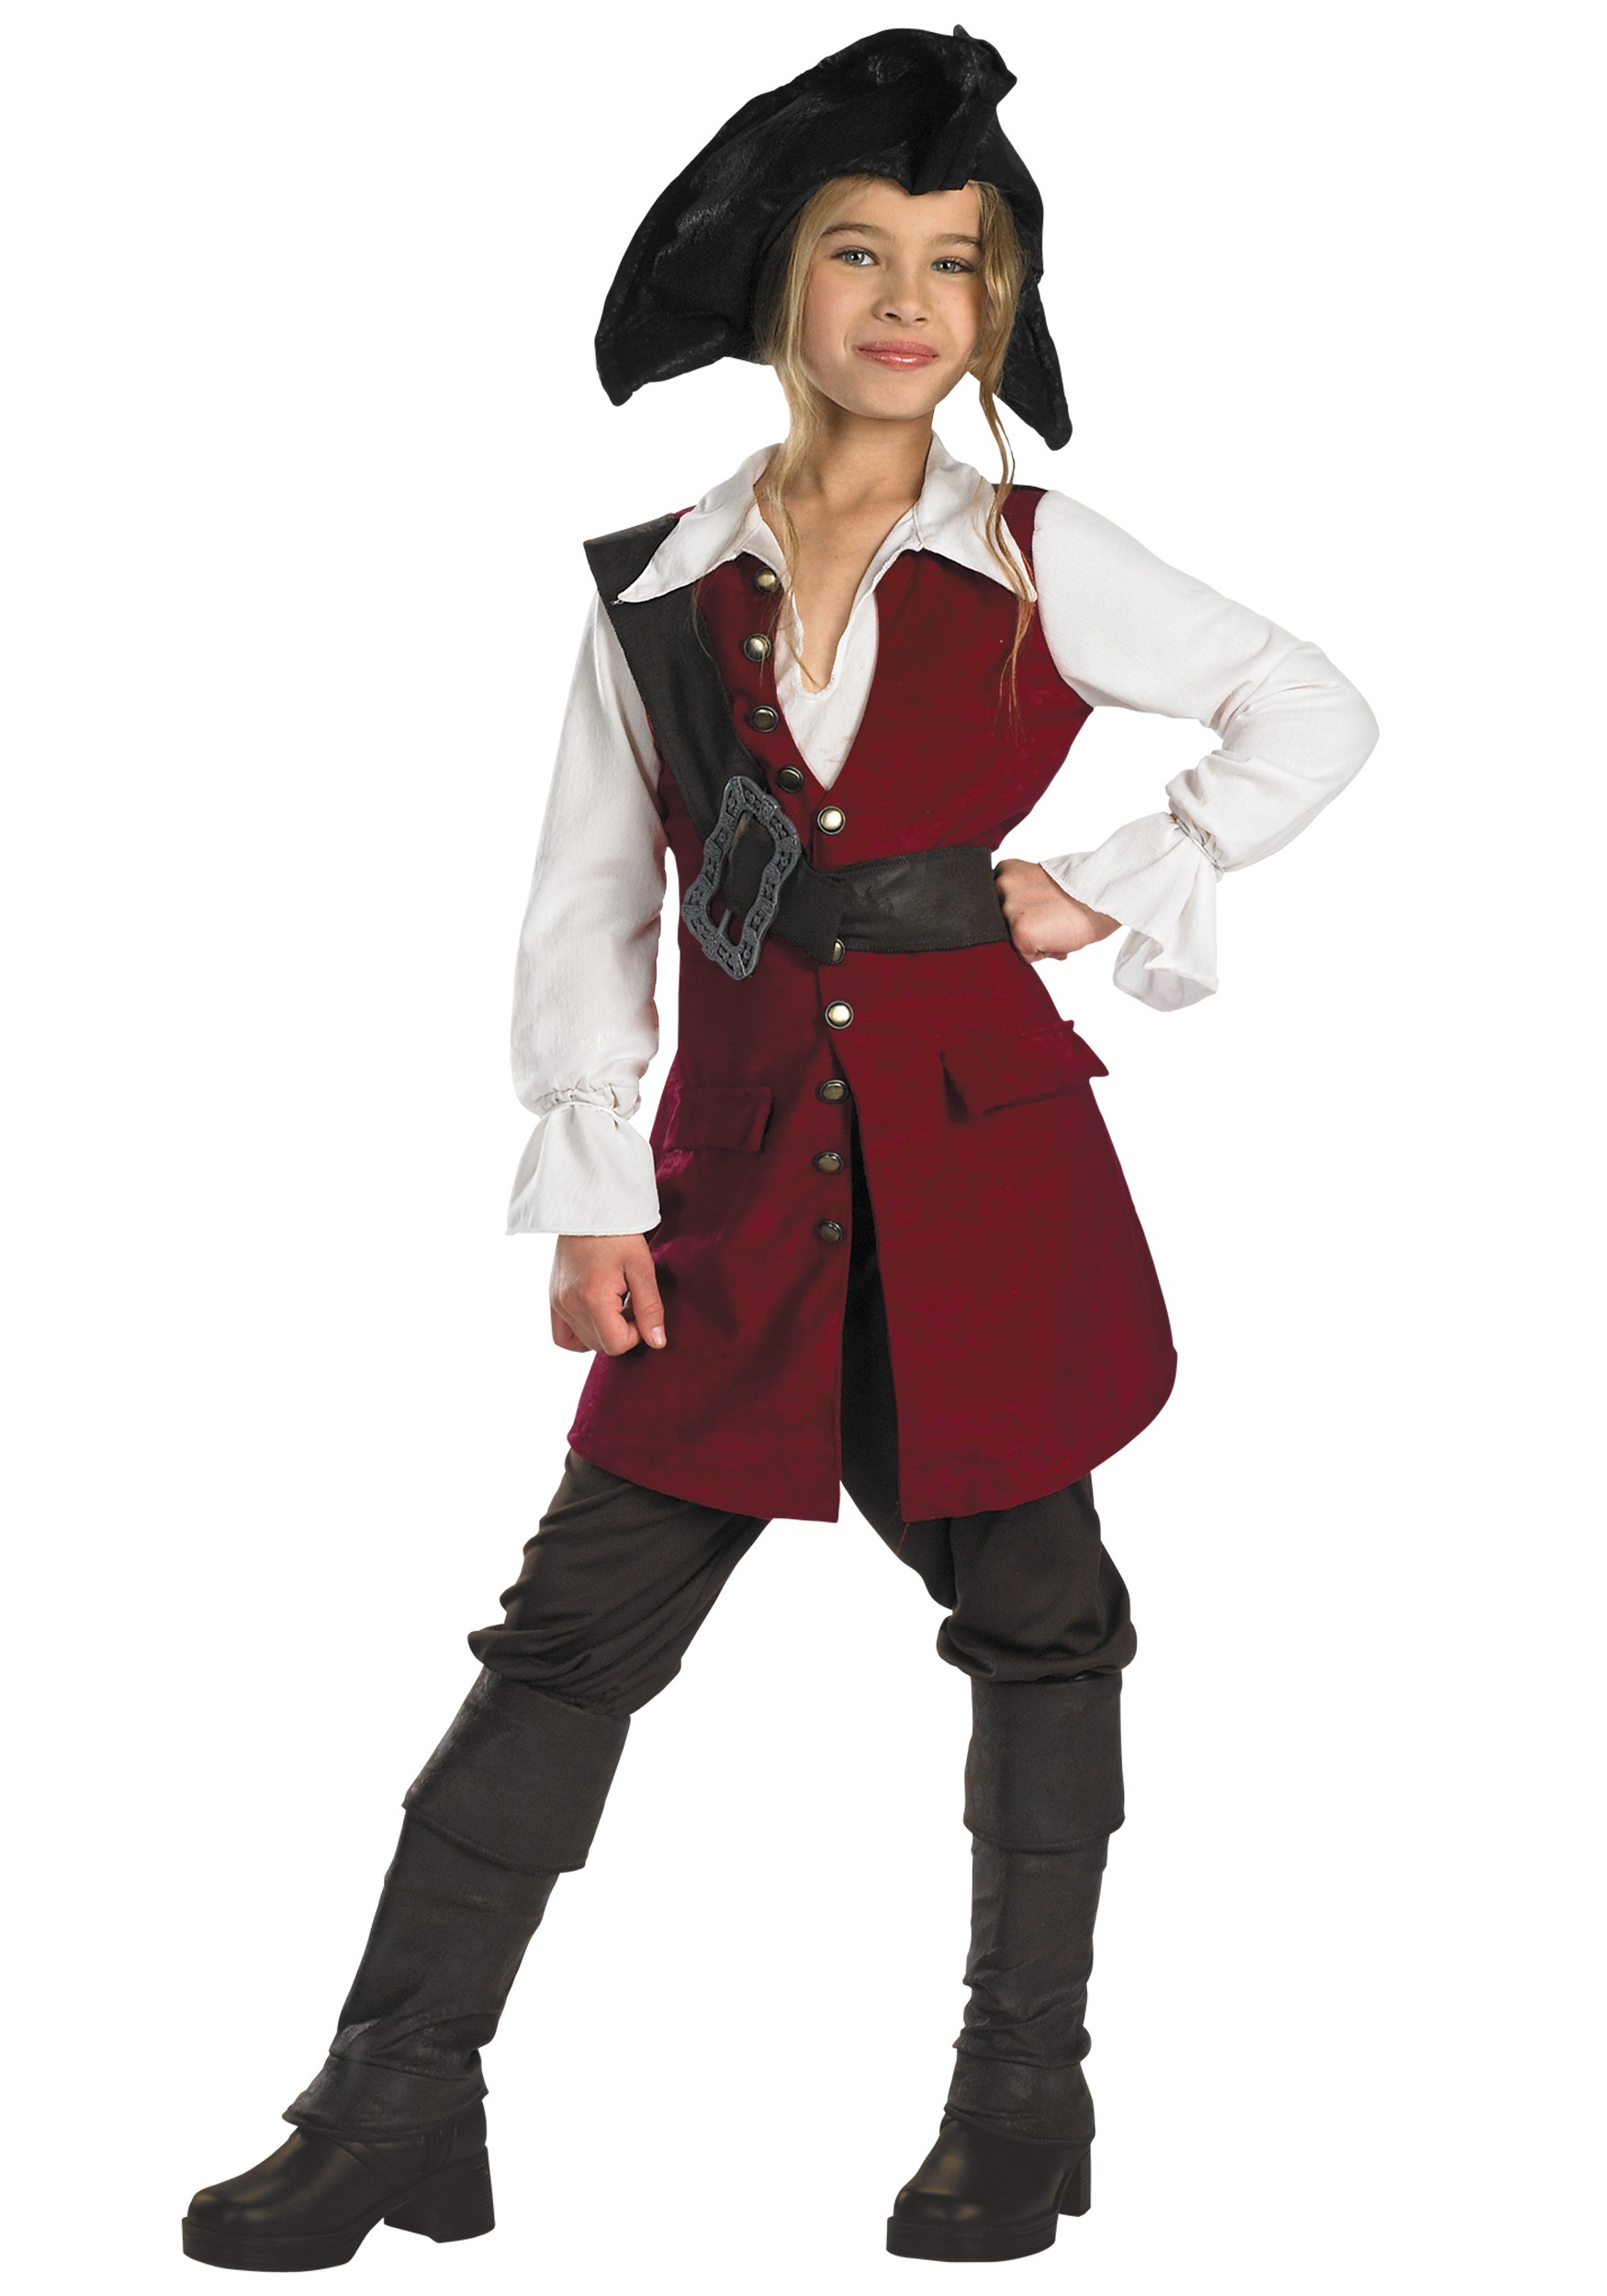 Kidu0027s Elizabeth Swann Pirate Costume  sc 1 st  Halloween Costumes : kids pirates costume  - Germanpascual.Com